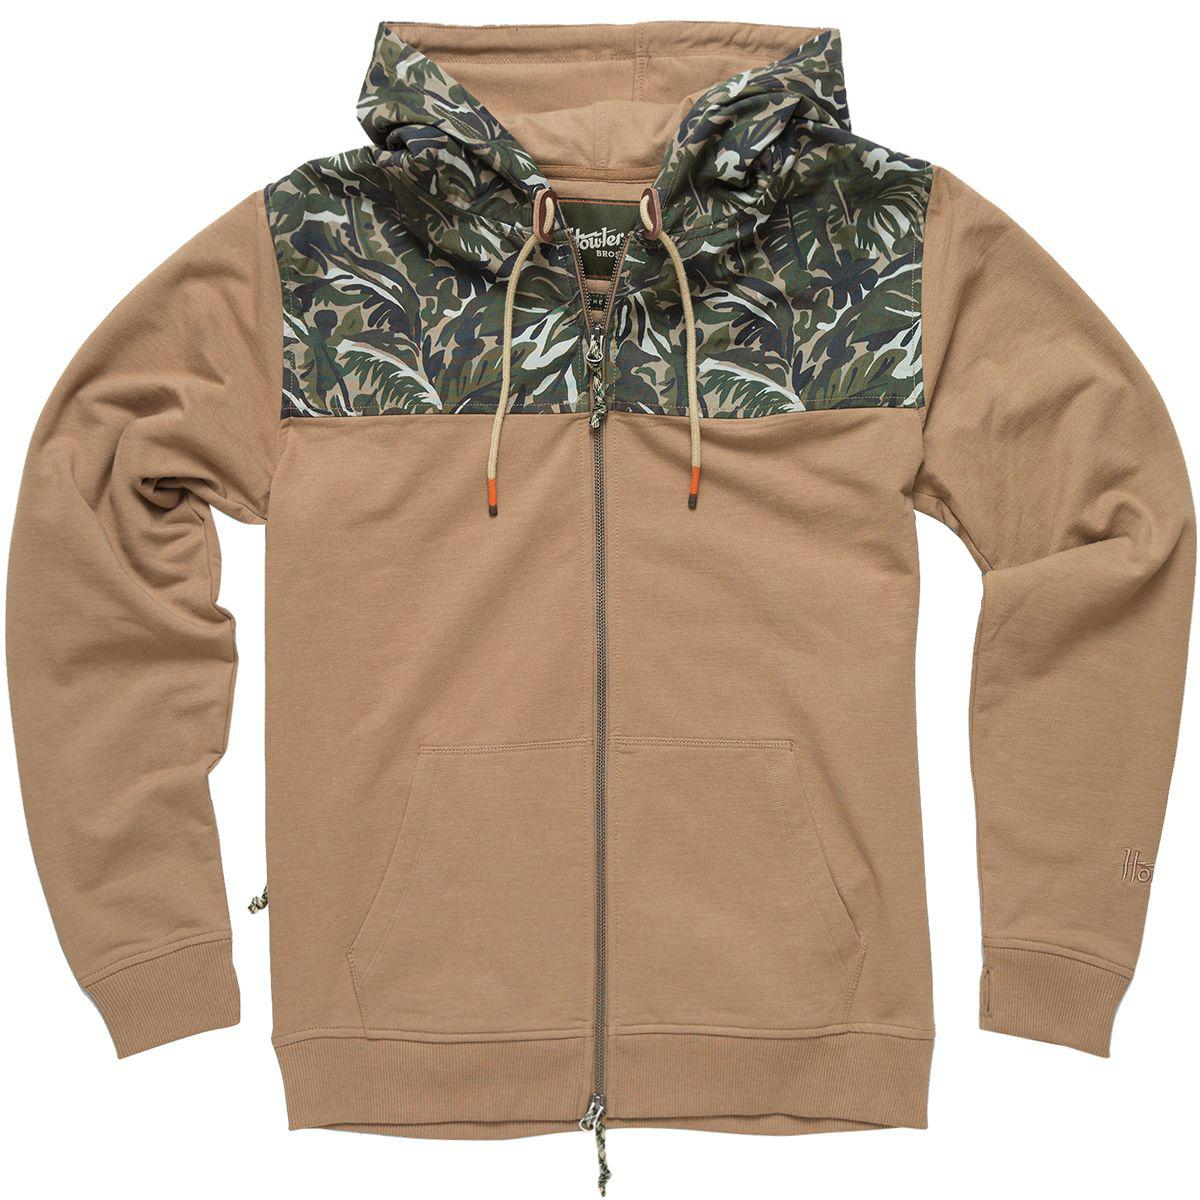 6d6658a3e08e Lyst - Howler Brothers Shaman Full-zip Hoodie in Green for Men